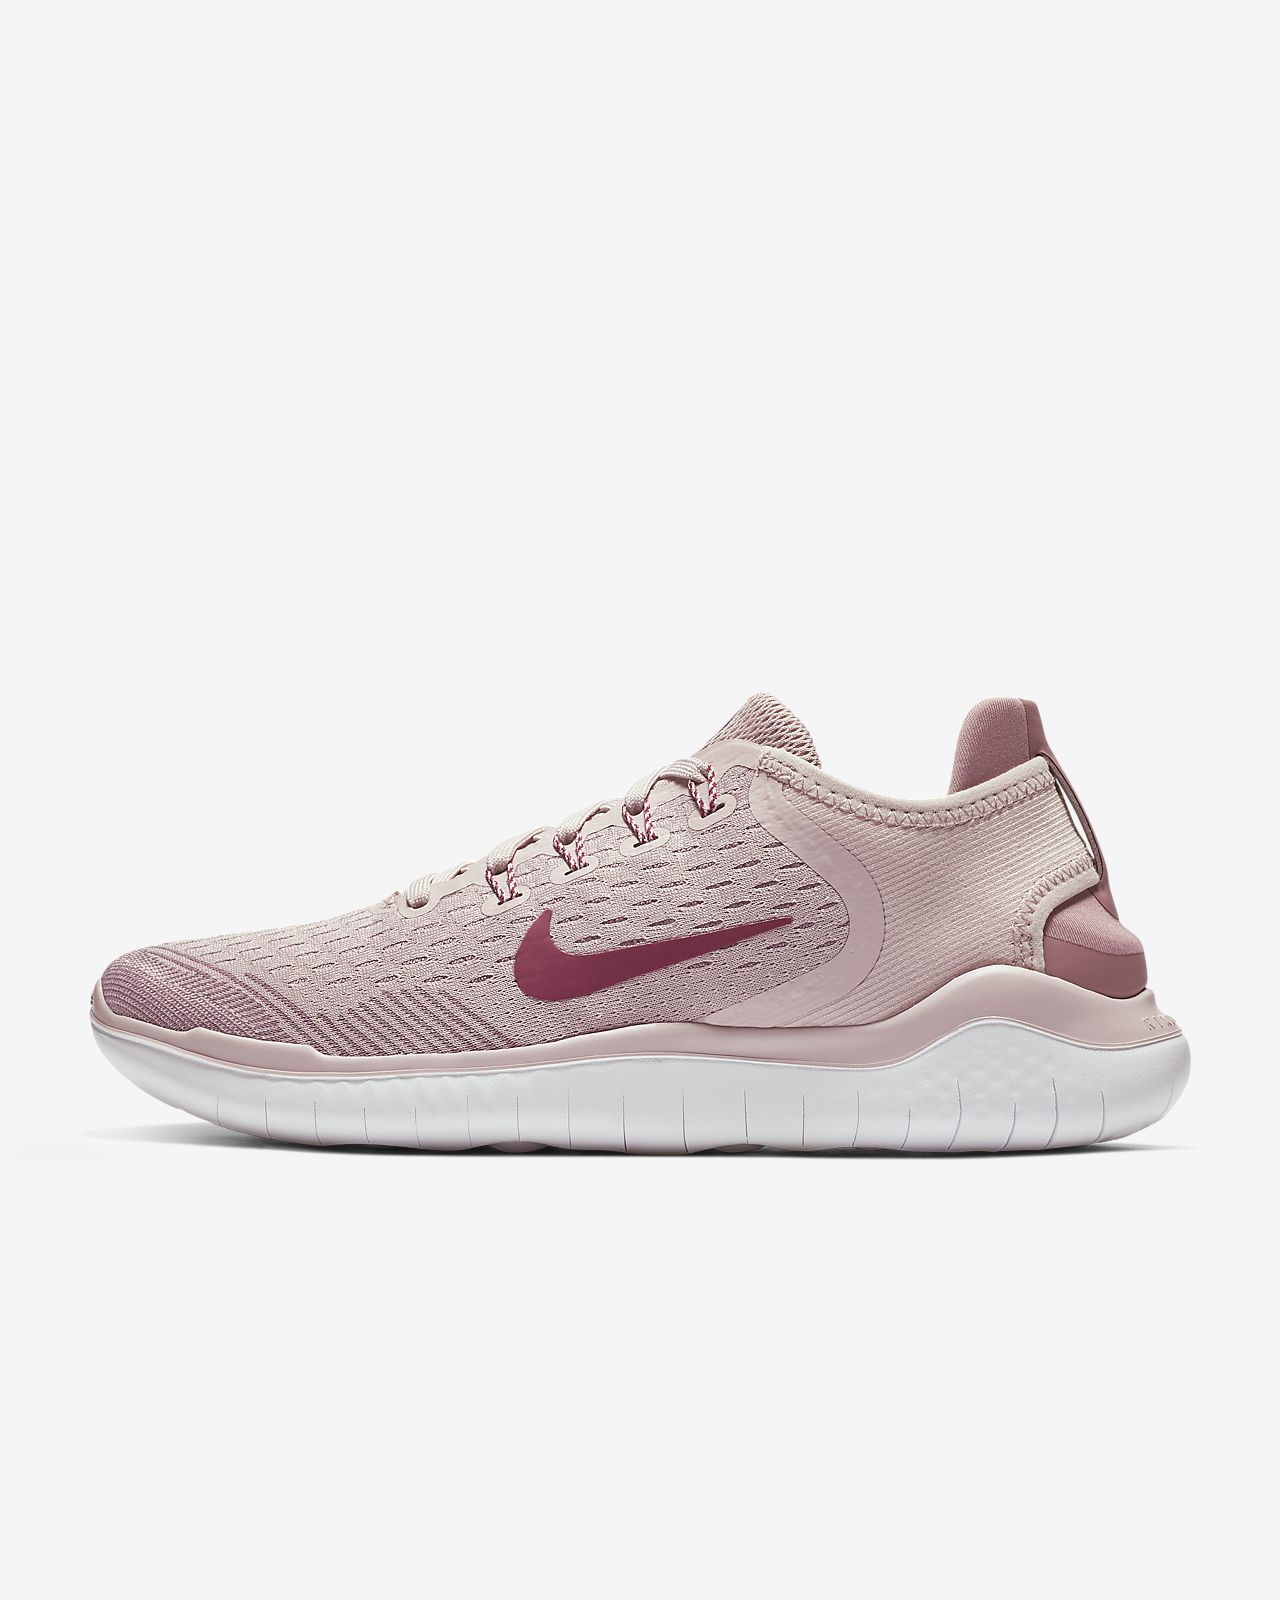 Nike Shoes Womens 2018 - Wallpaper HD Shoes Hbthenextwave.Org 866cb8e62